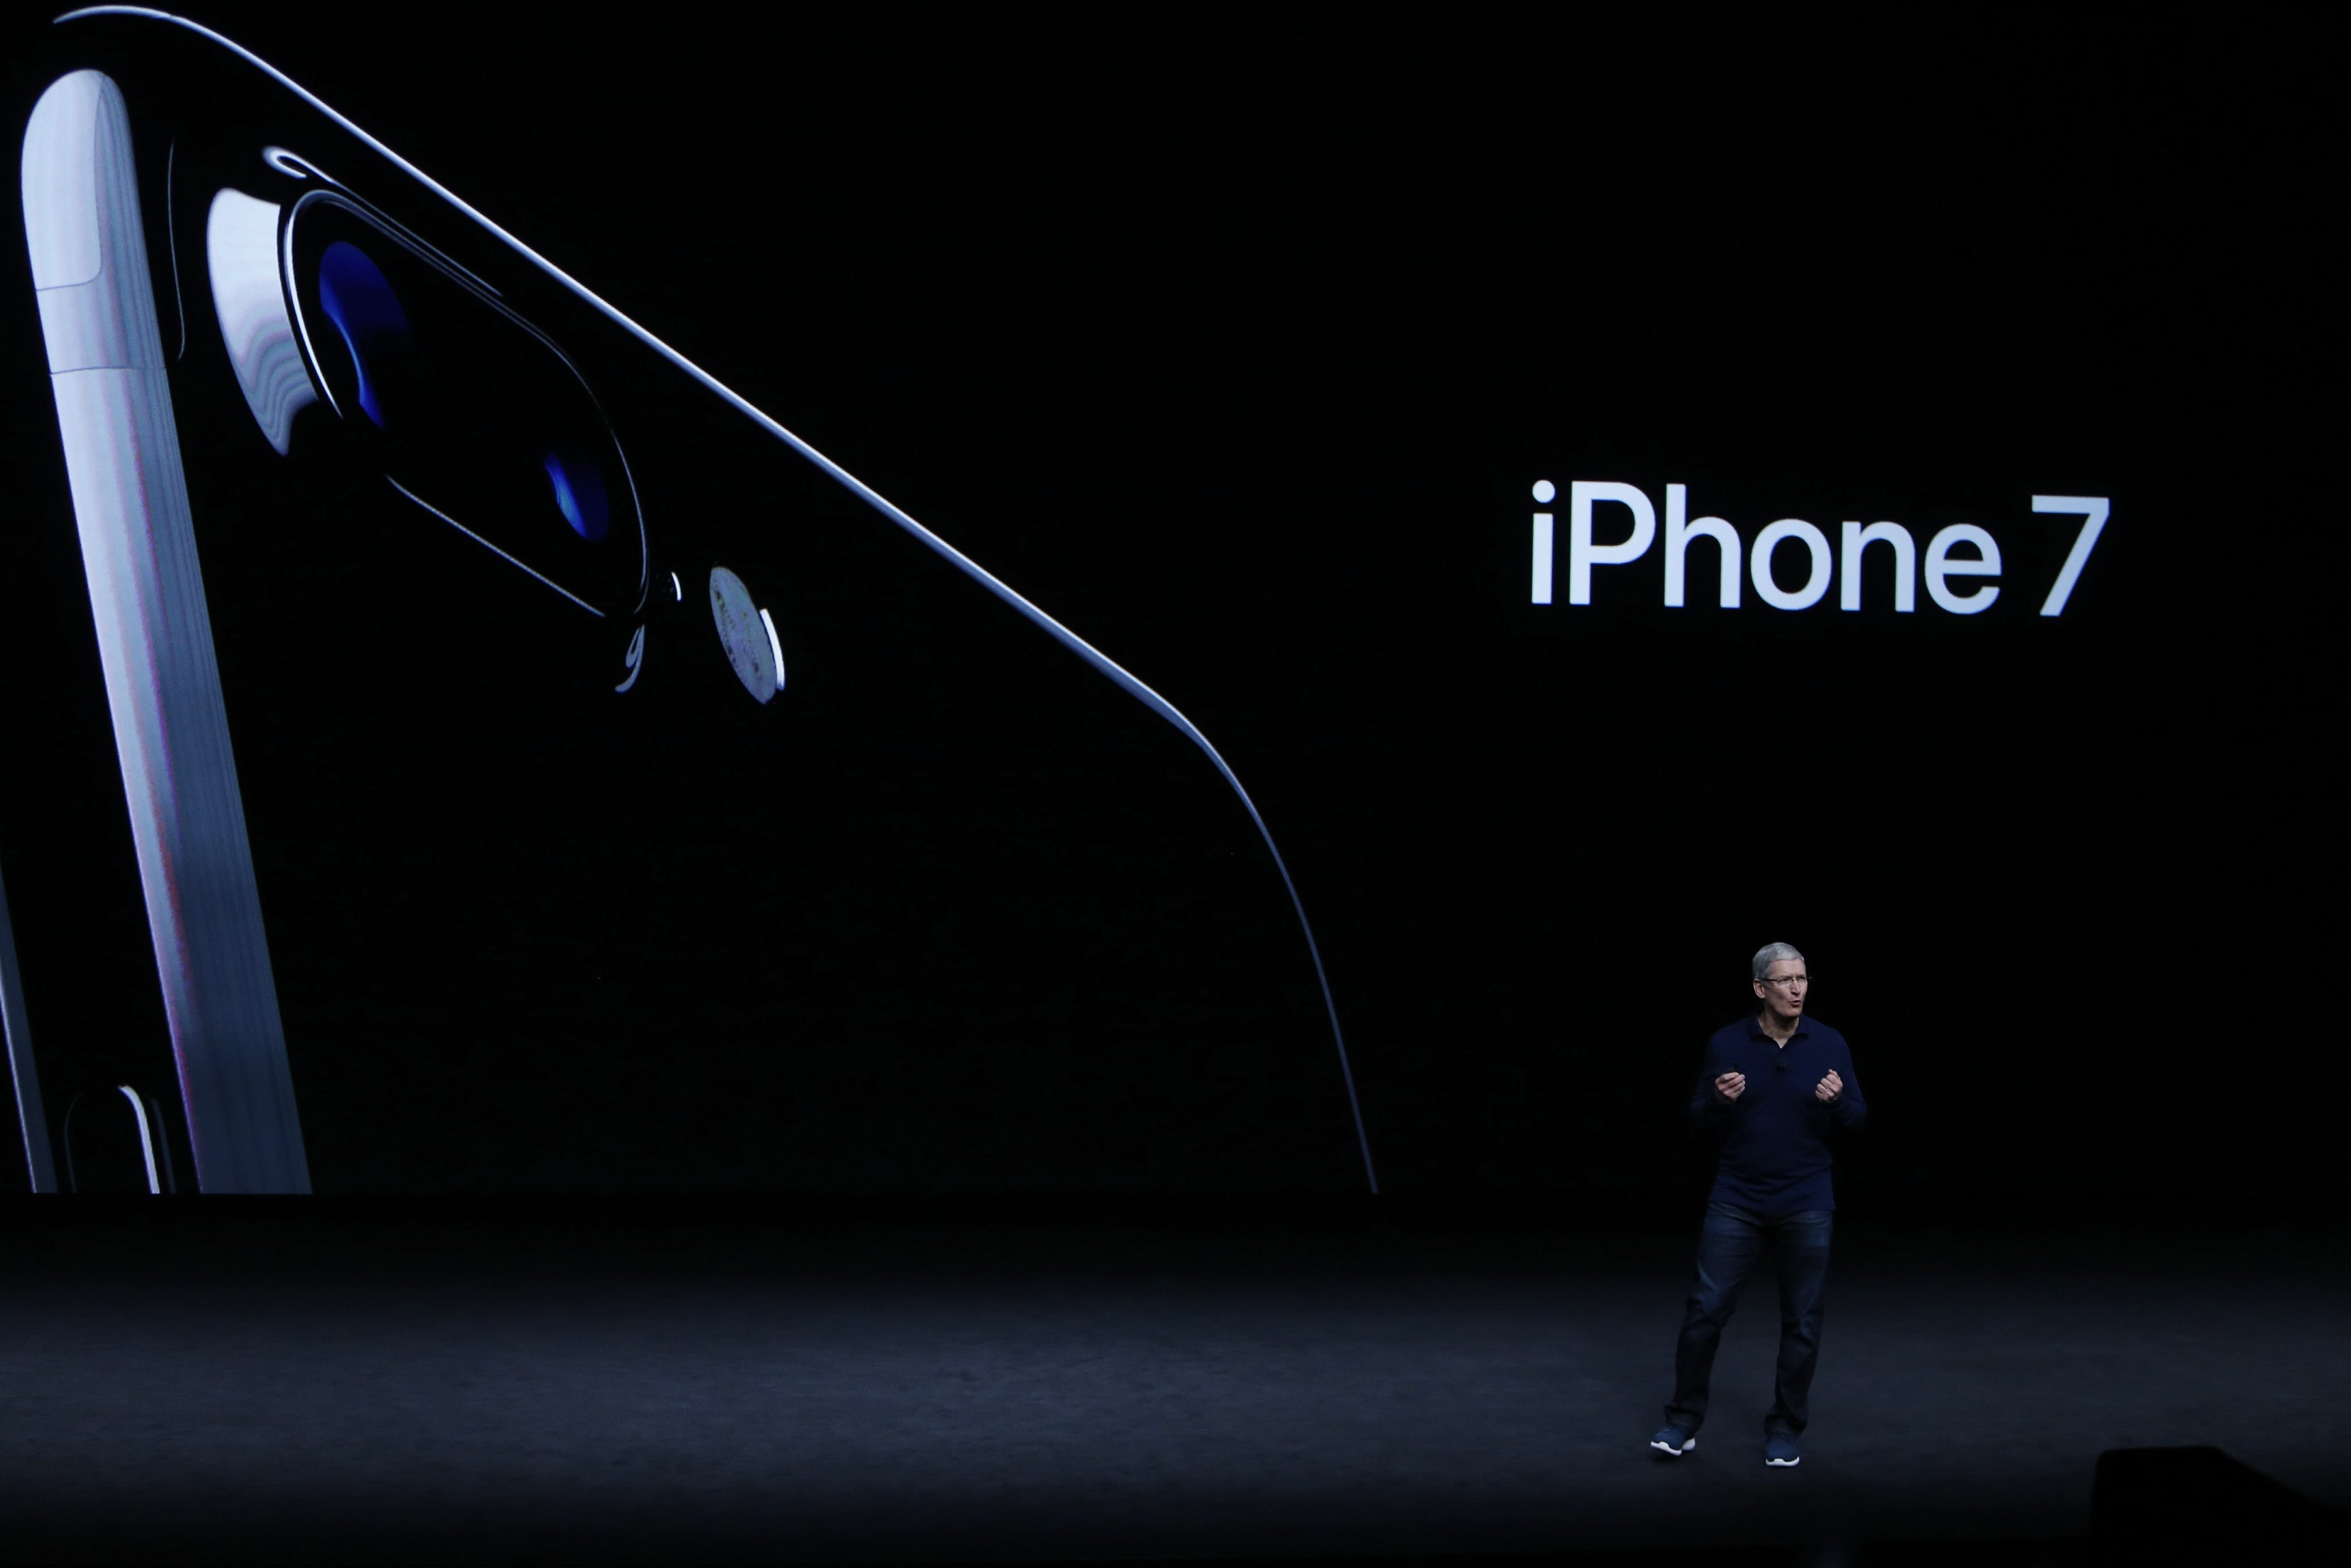 Apple is losing the innovation game, it can't trap users anymore